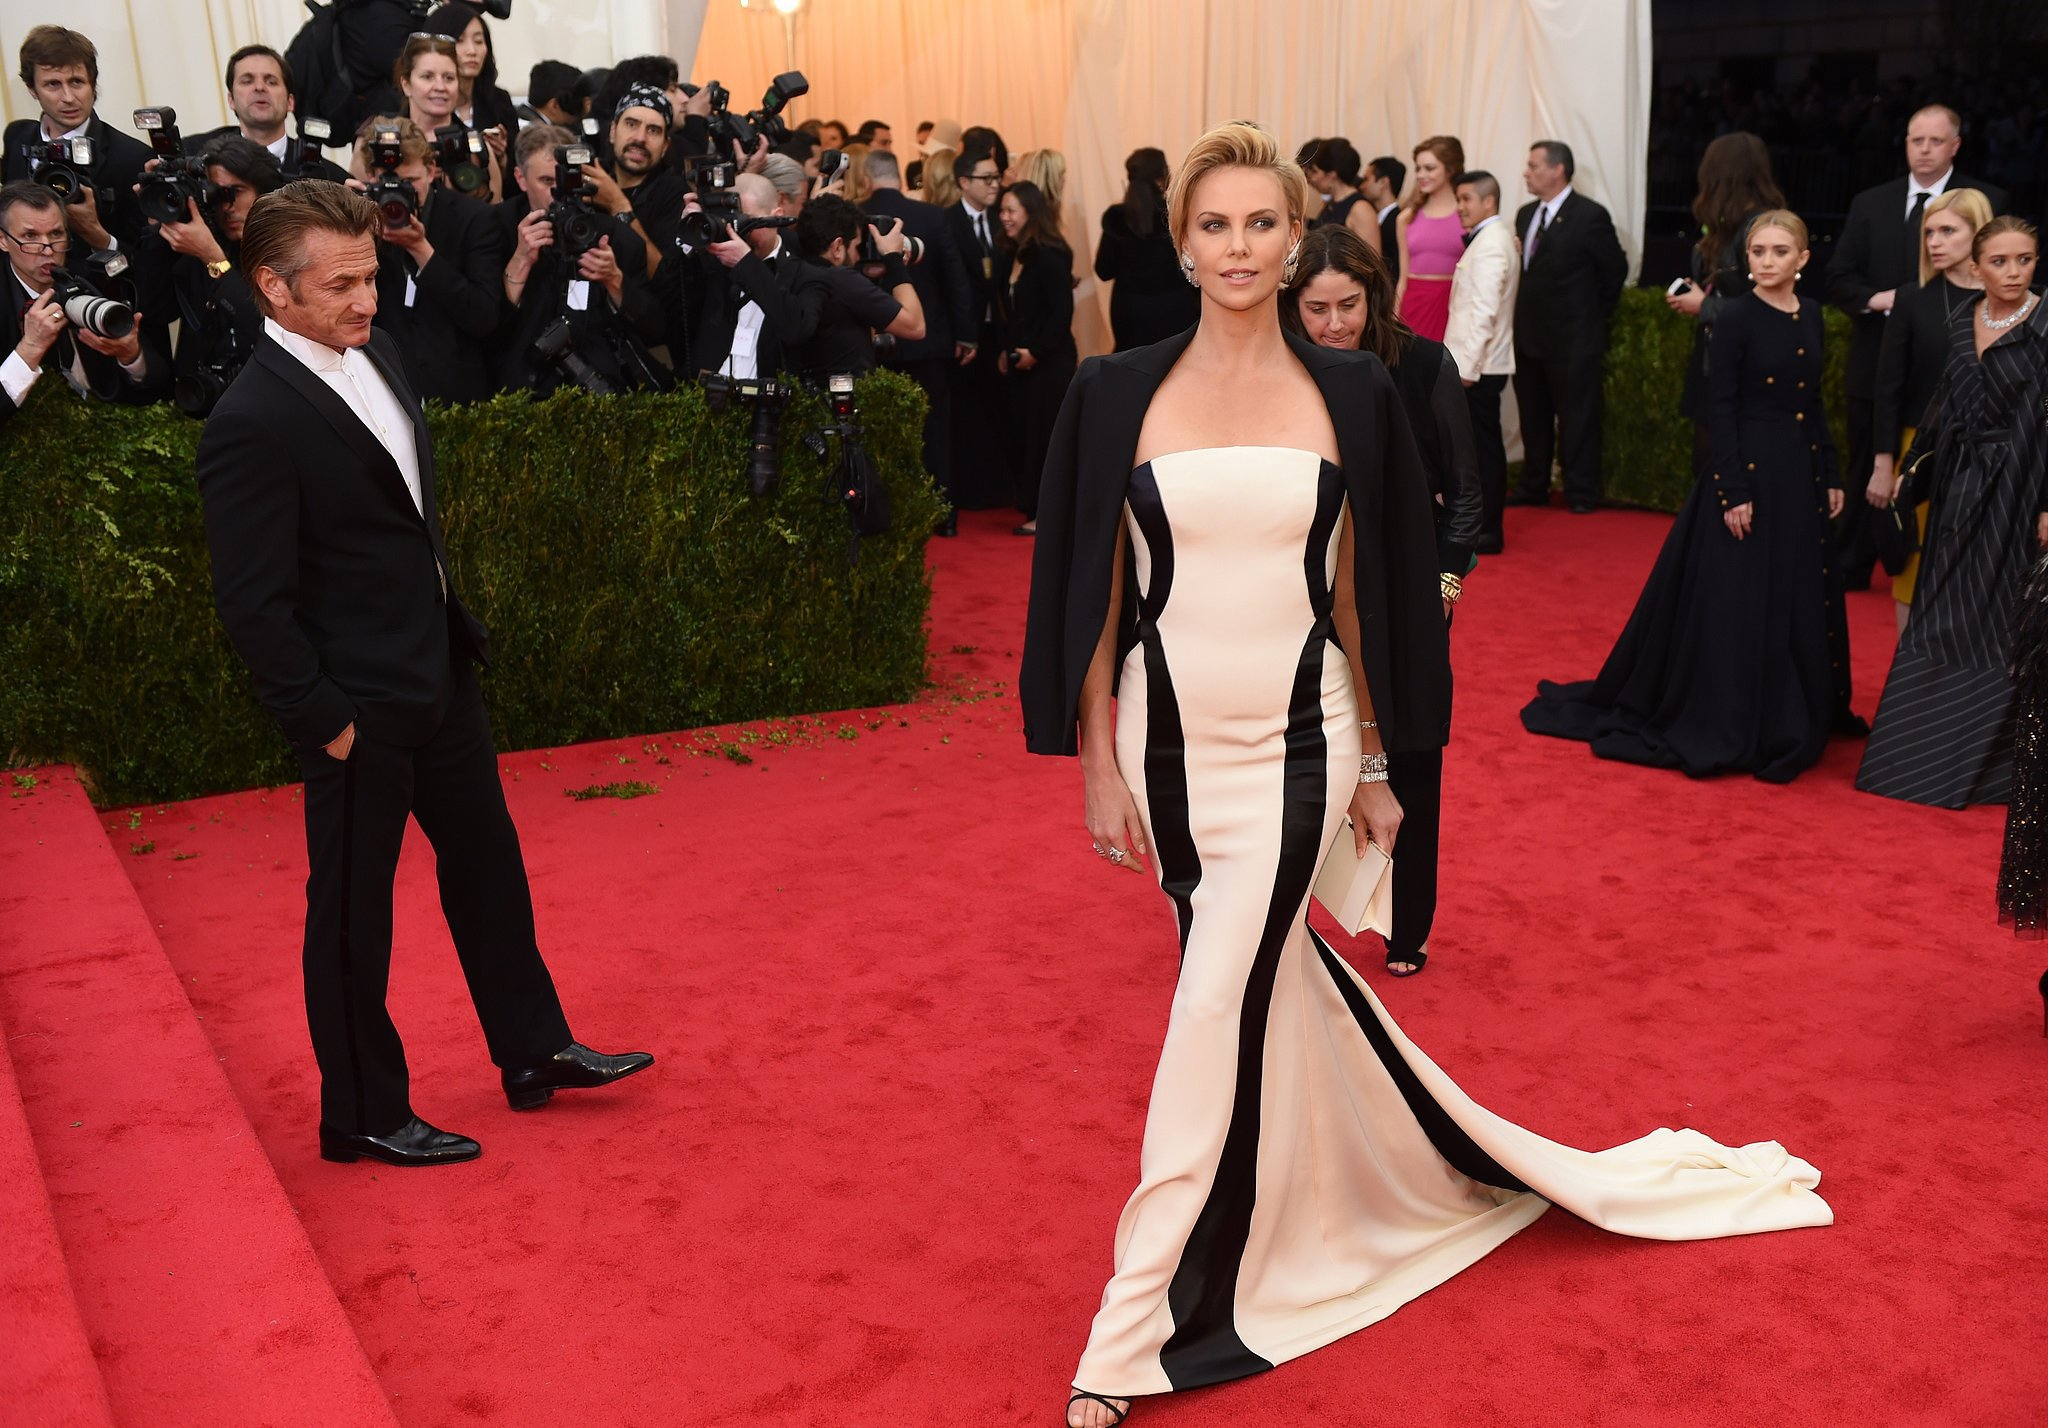 What was Sean Penn looking at as Charlize Theron showed off her dress?